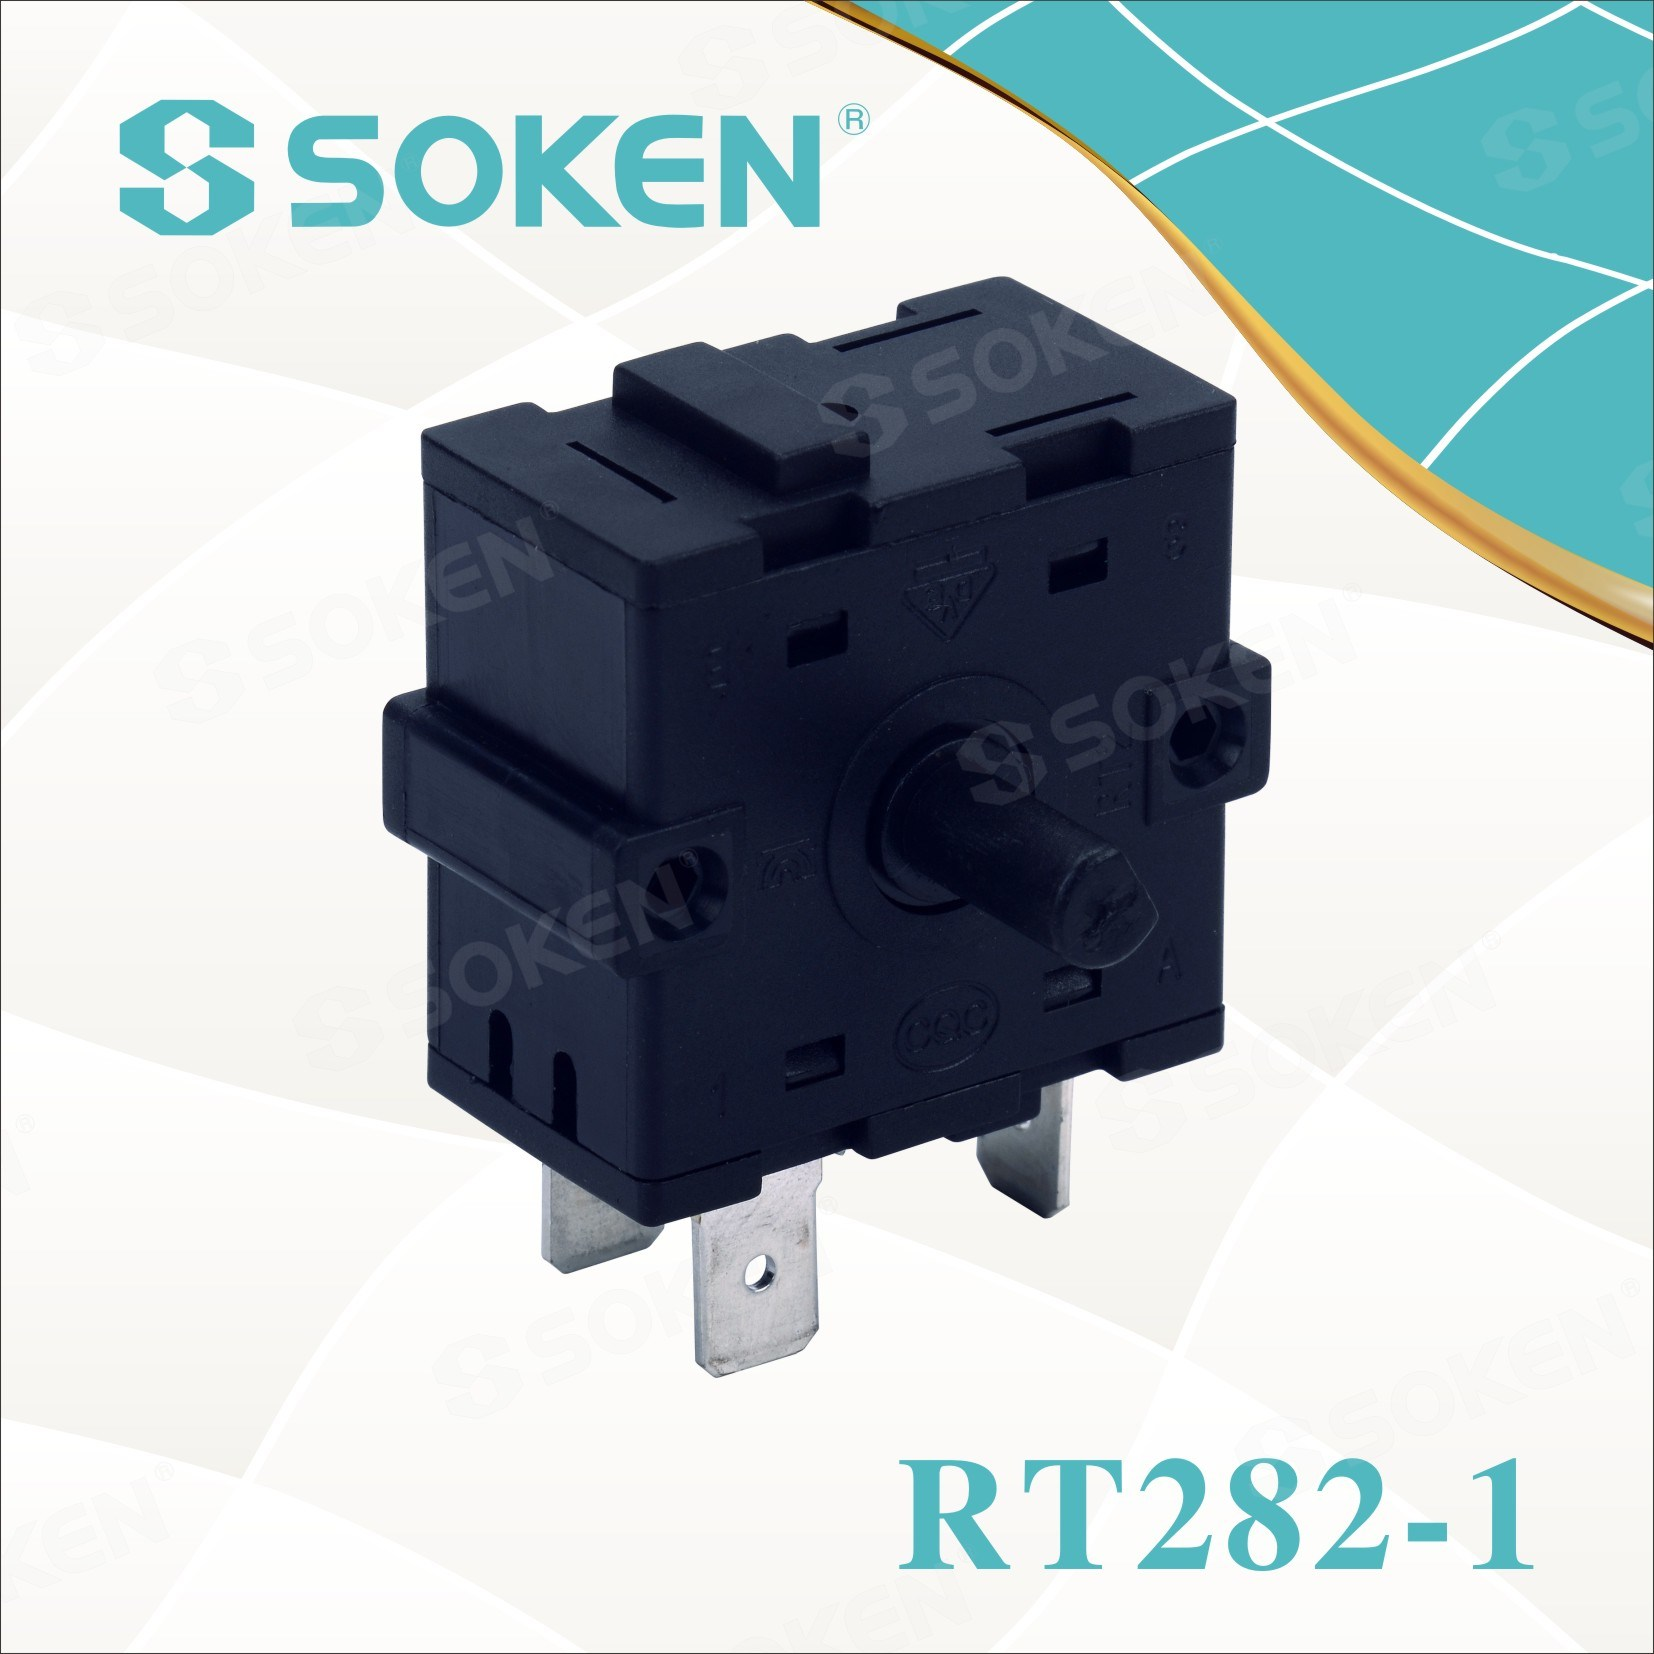 Soken 8 Position Cooker Rotary Switch